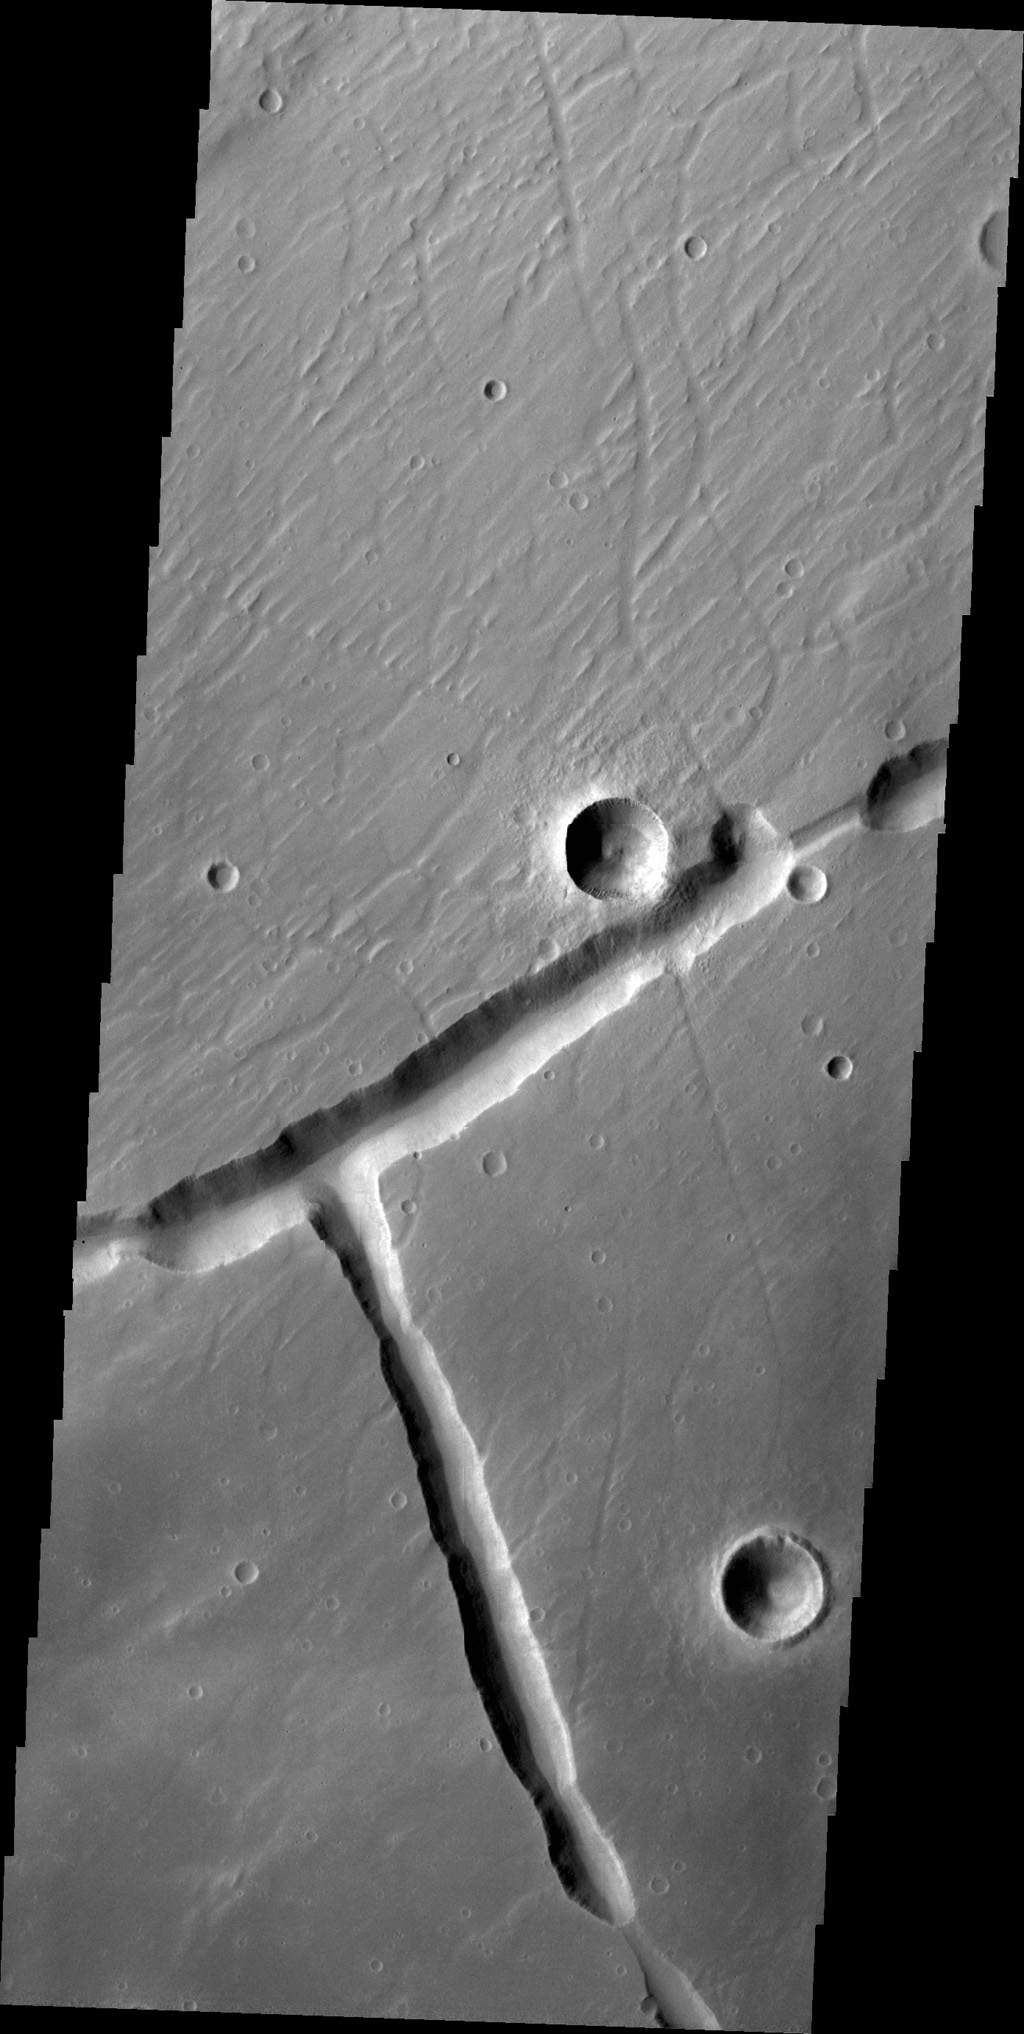 Right angles are not common in nature. They are almost always formed by tectonic forces. This right angle on Mars is part of Sacra Fossae. This image is from NASA's 2001 Mars Odyssey spacecraft.